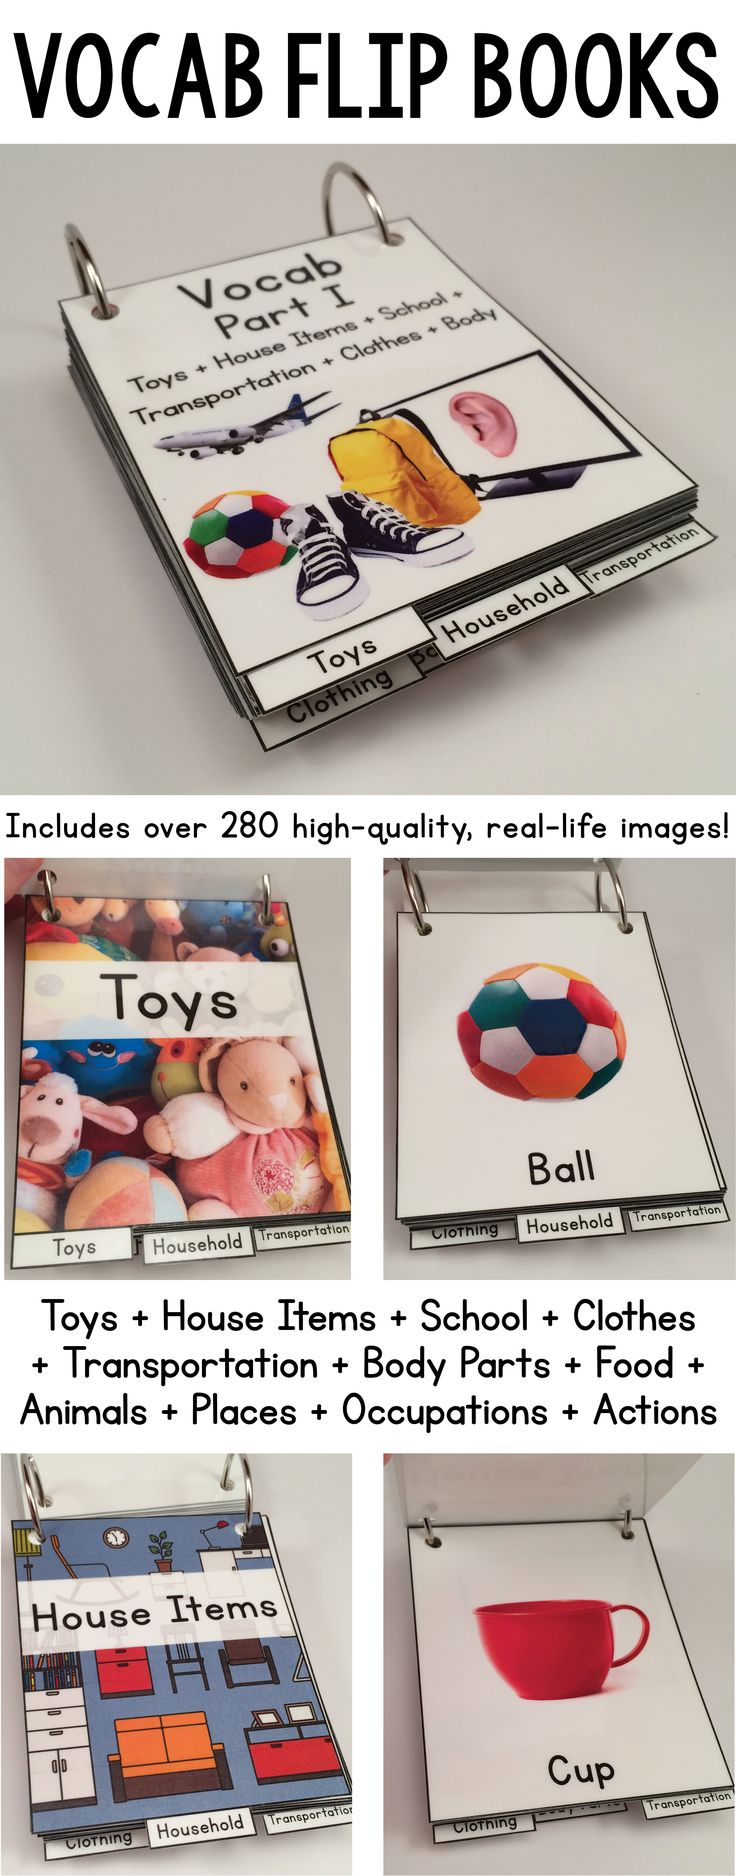 Vocab Flip Books! Over 280 Real-Life Images! House, Animals, Food + much more